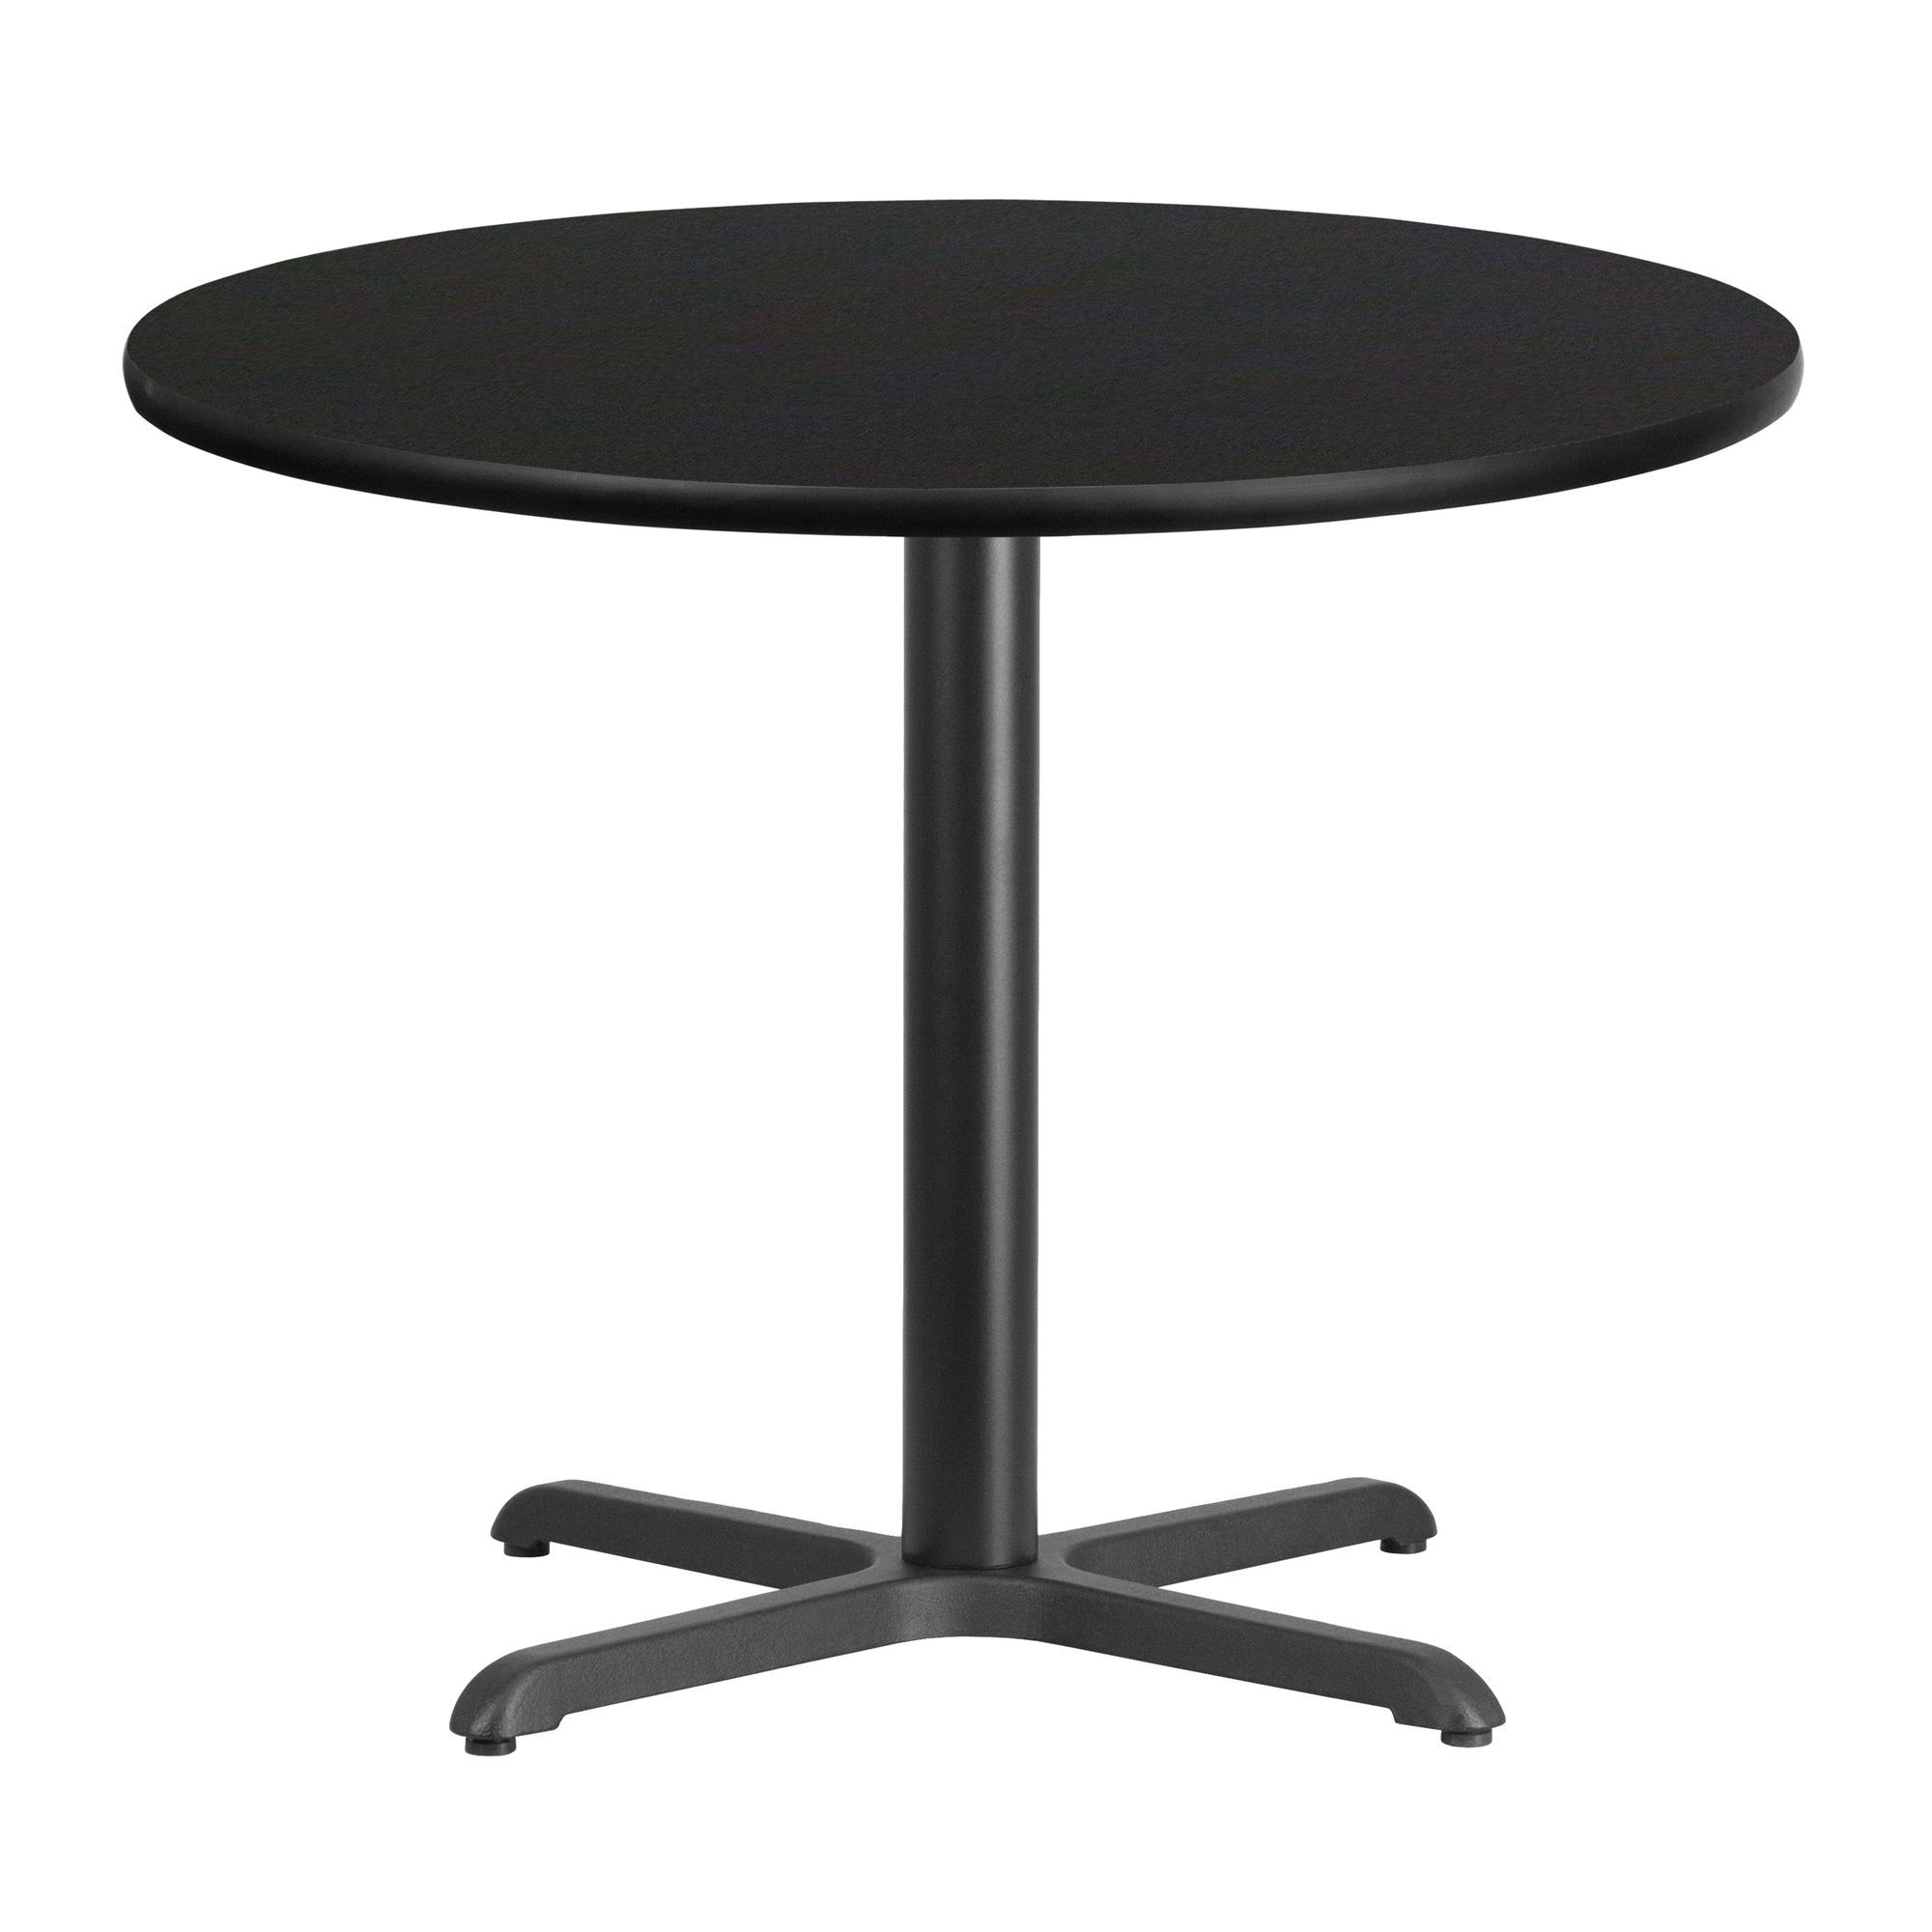 36 Round Black Laminate Table Top With 30 X 30 Table Height